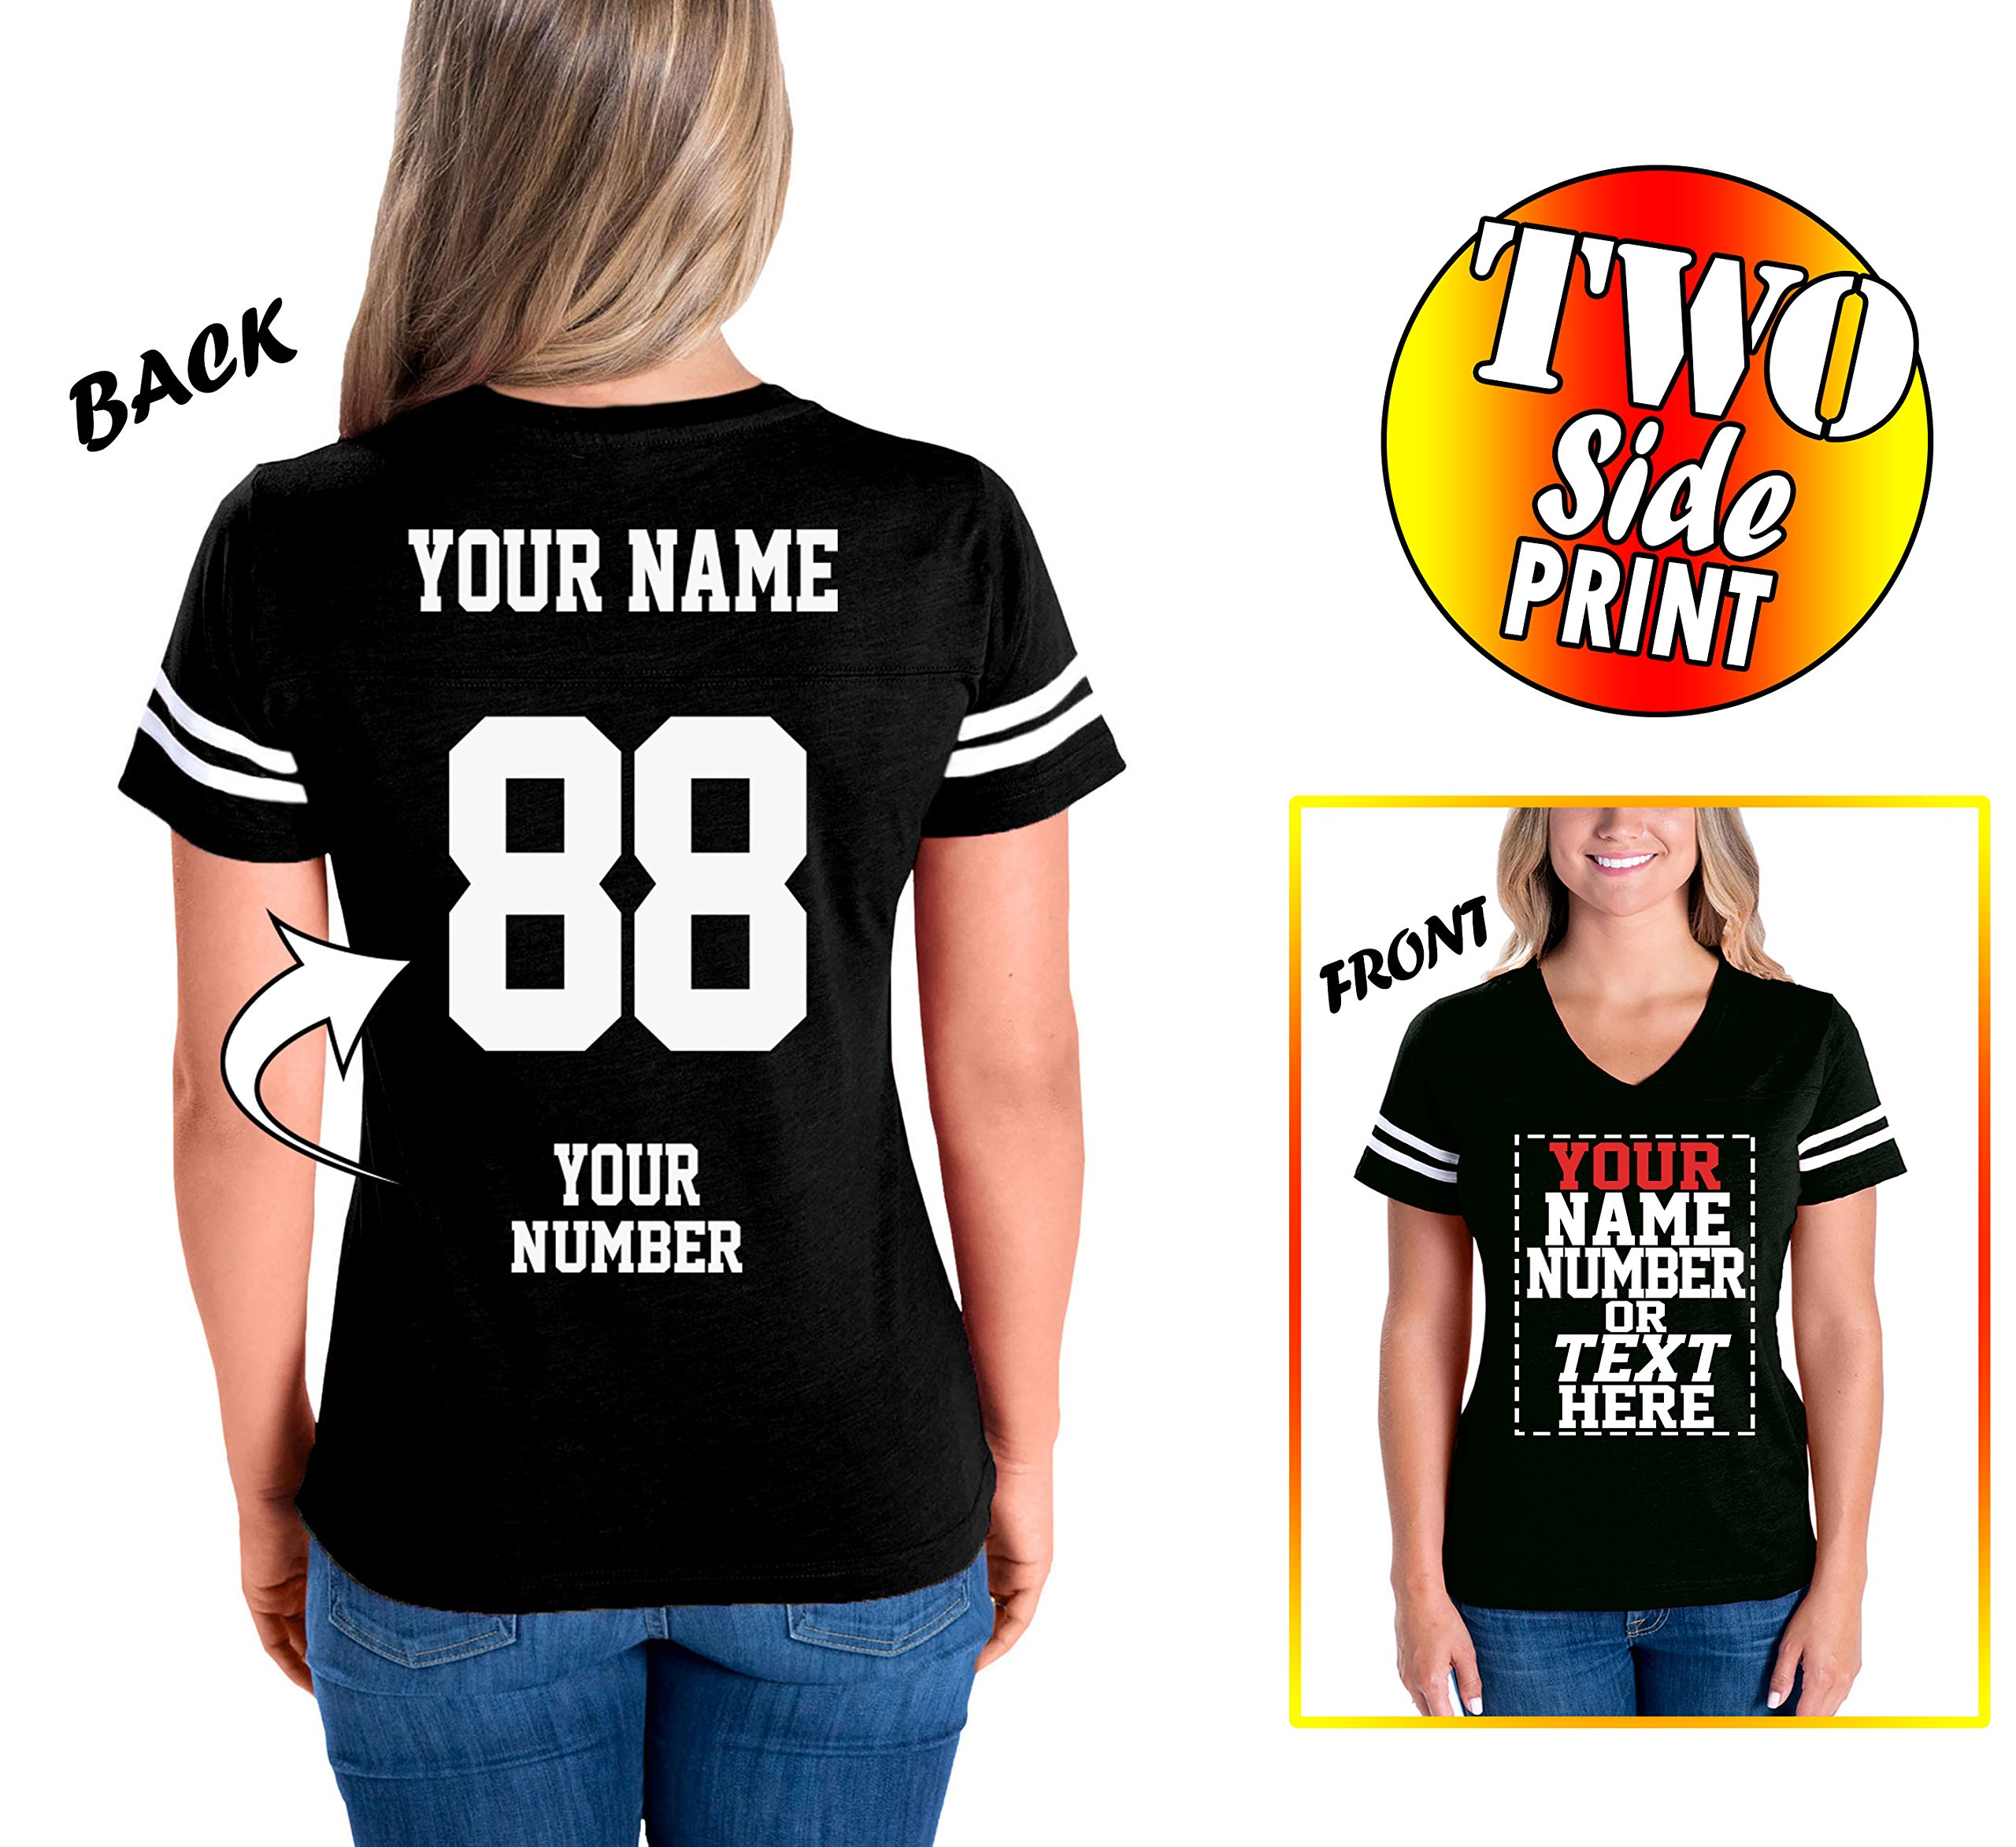 Custom Cotton Jerseys for Women - Personalized Team Uniforms for Casual Outfit